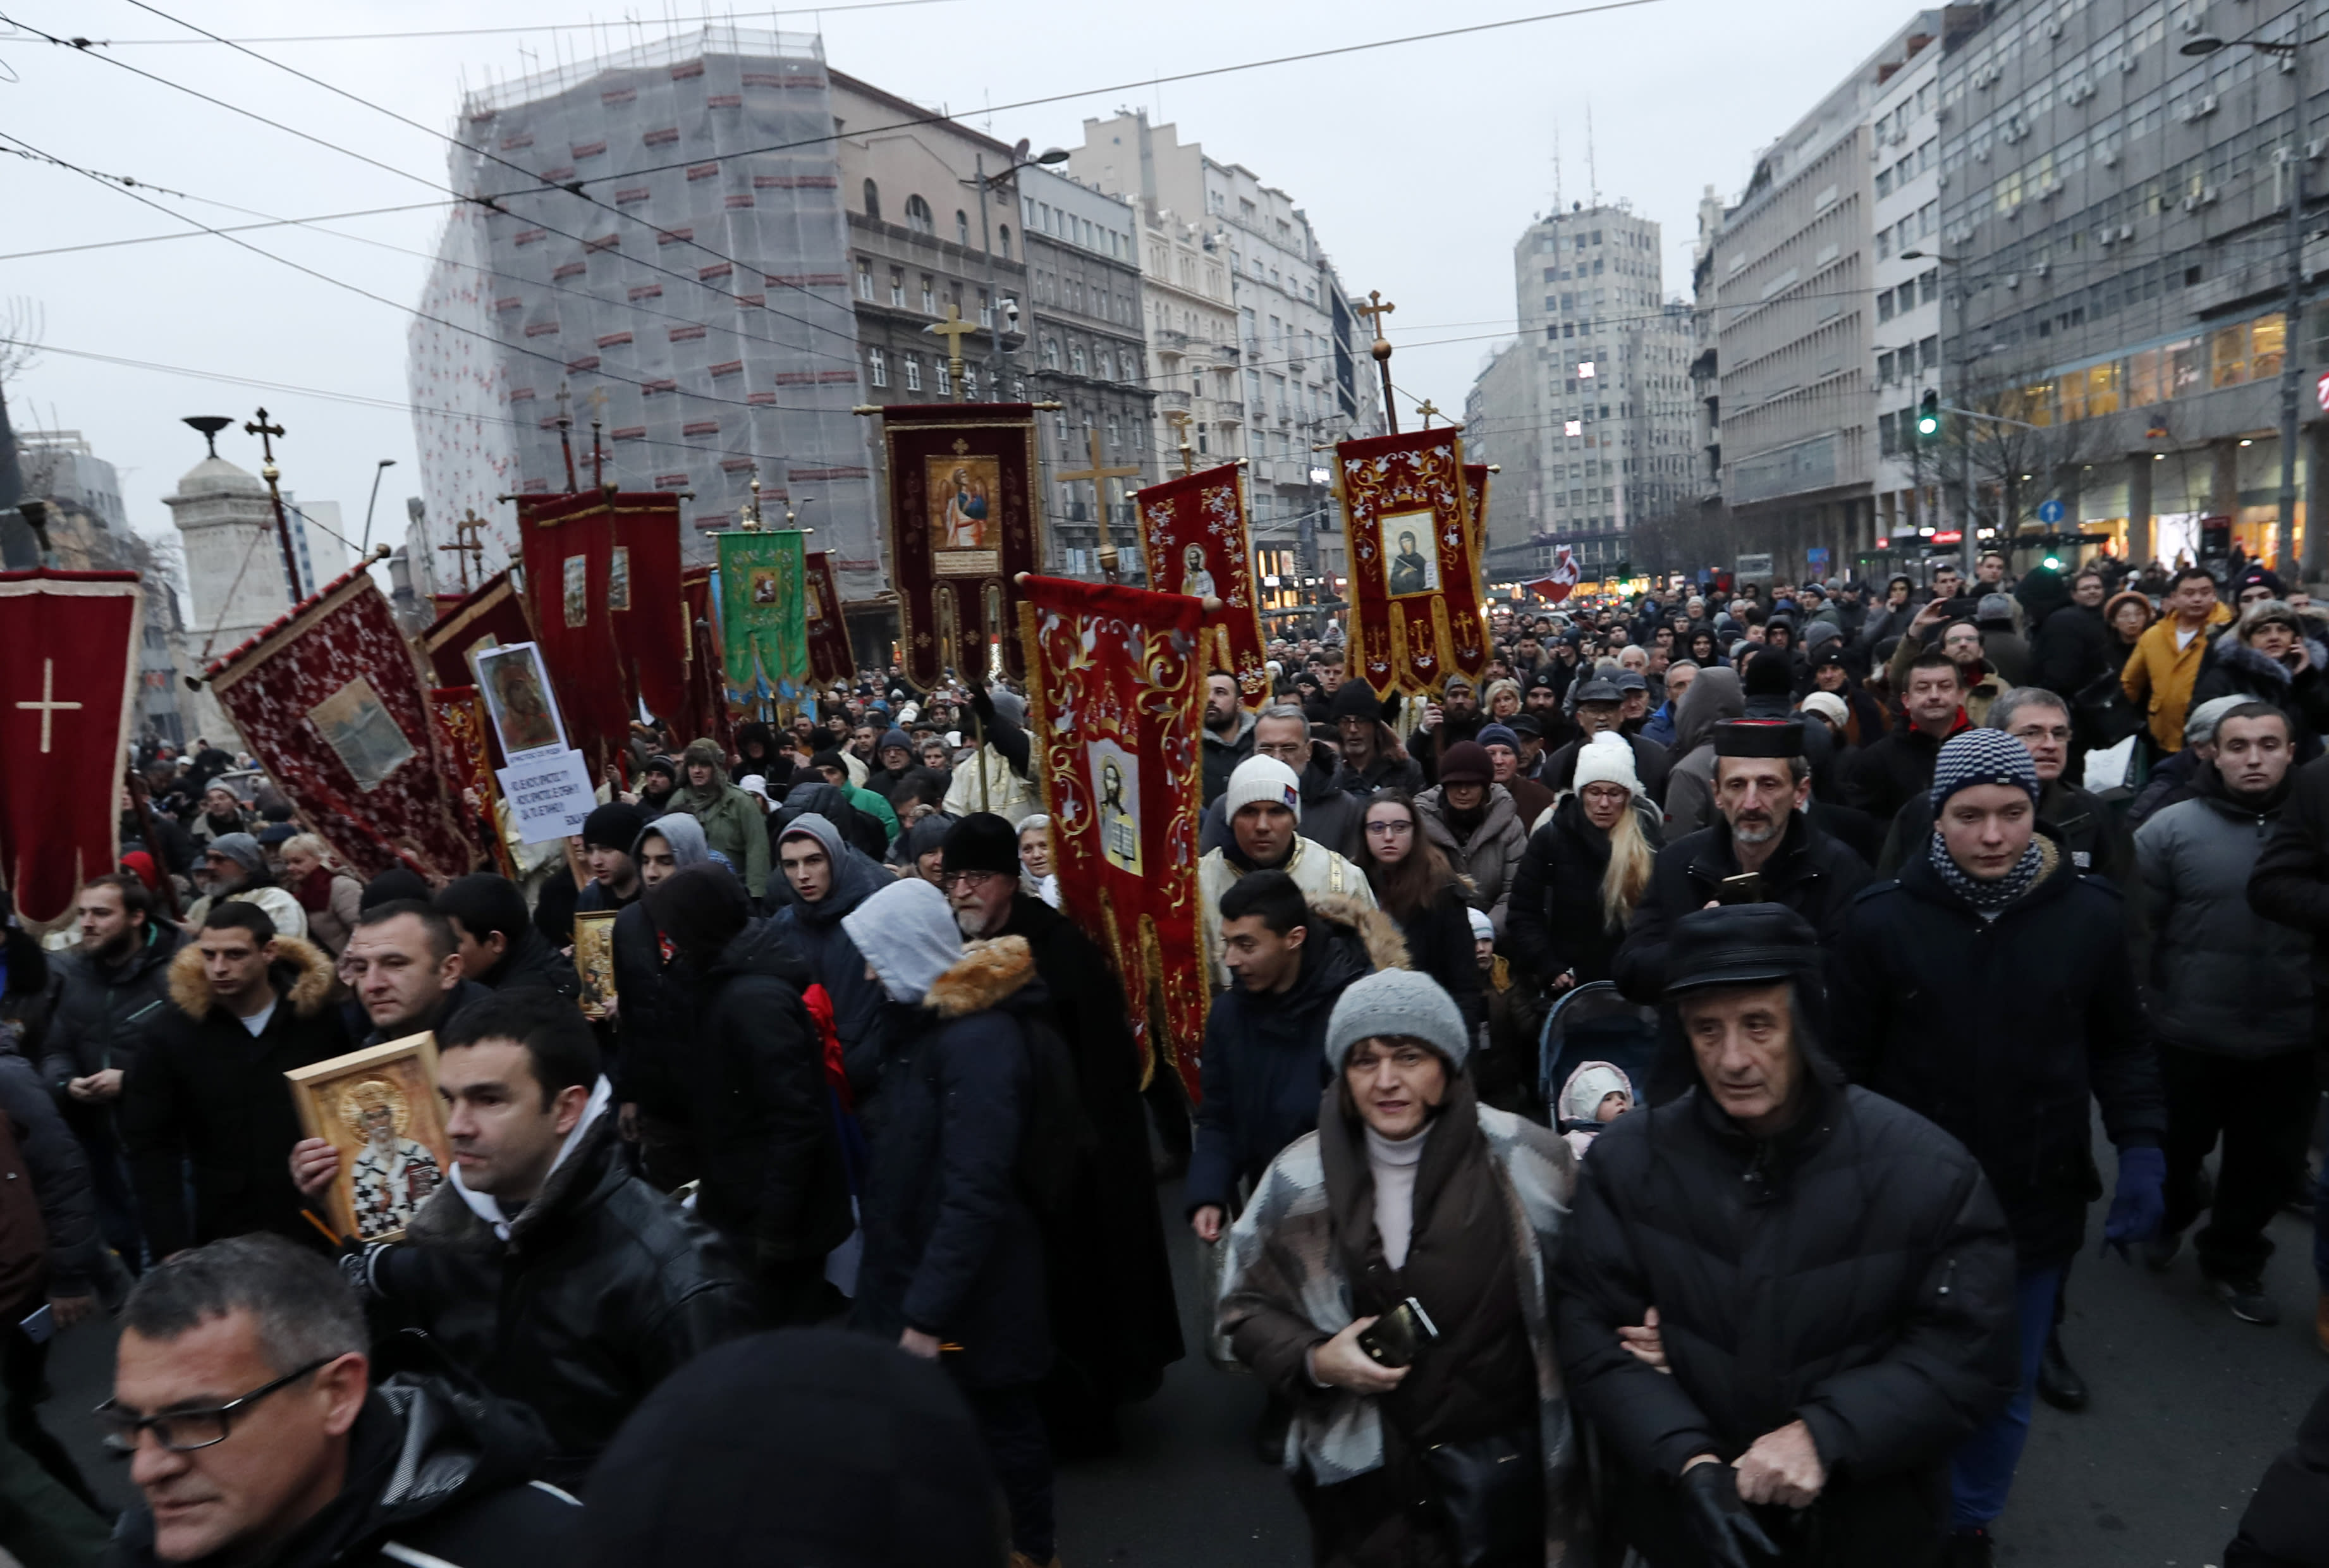 People hold Serbian church flags during a rally in central Belgrade, Serbia, Wednesday, Jan. 8, 2020. Thousands of Serbs have answered a call by the Serbian Orthodox Church to stage a protest against alleged suppression of religious and other rights of minority Serbs in neighboring countries. (AP Photo/Darko Vojinovic)